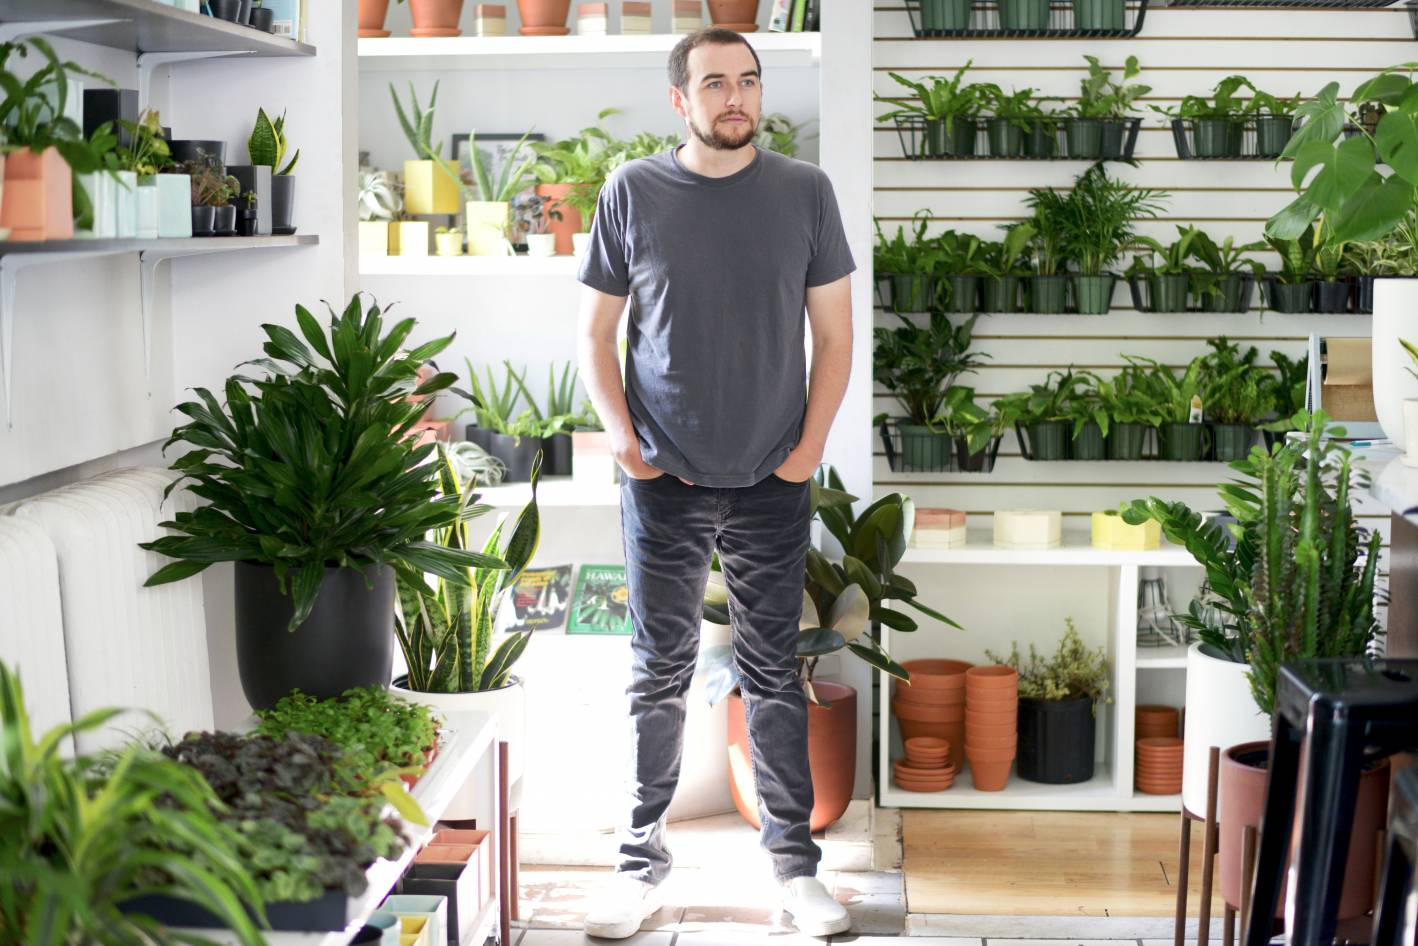 andrew the sill, the sill, plants, office style, what he wore, what he wore the sill office style